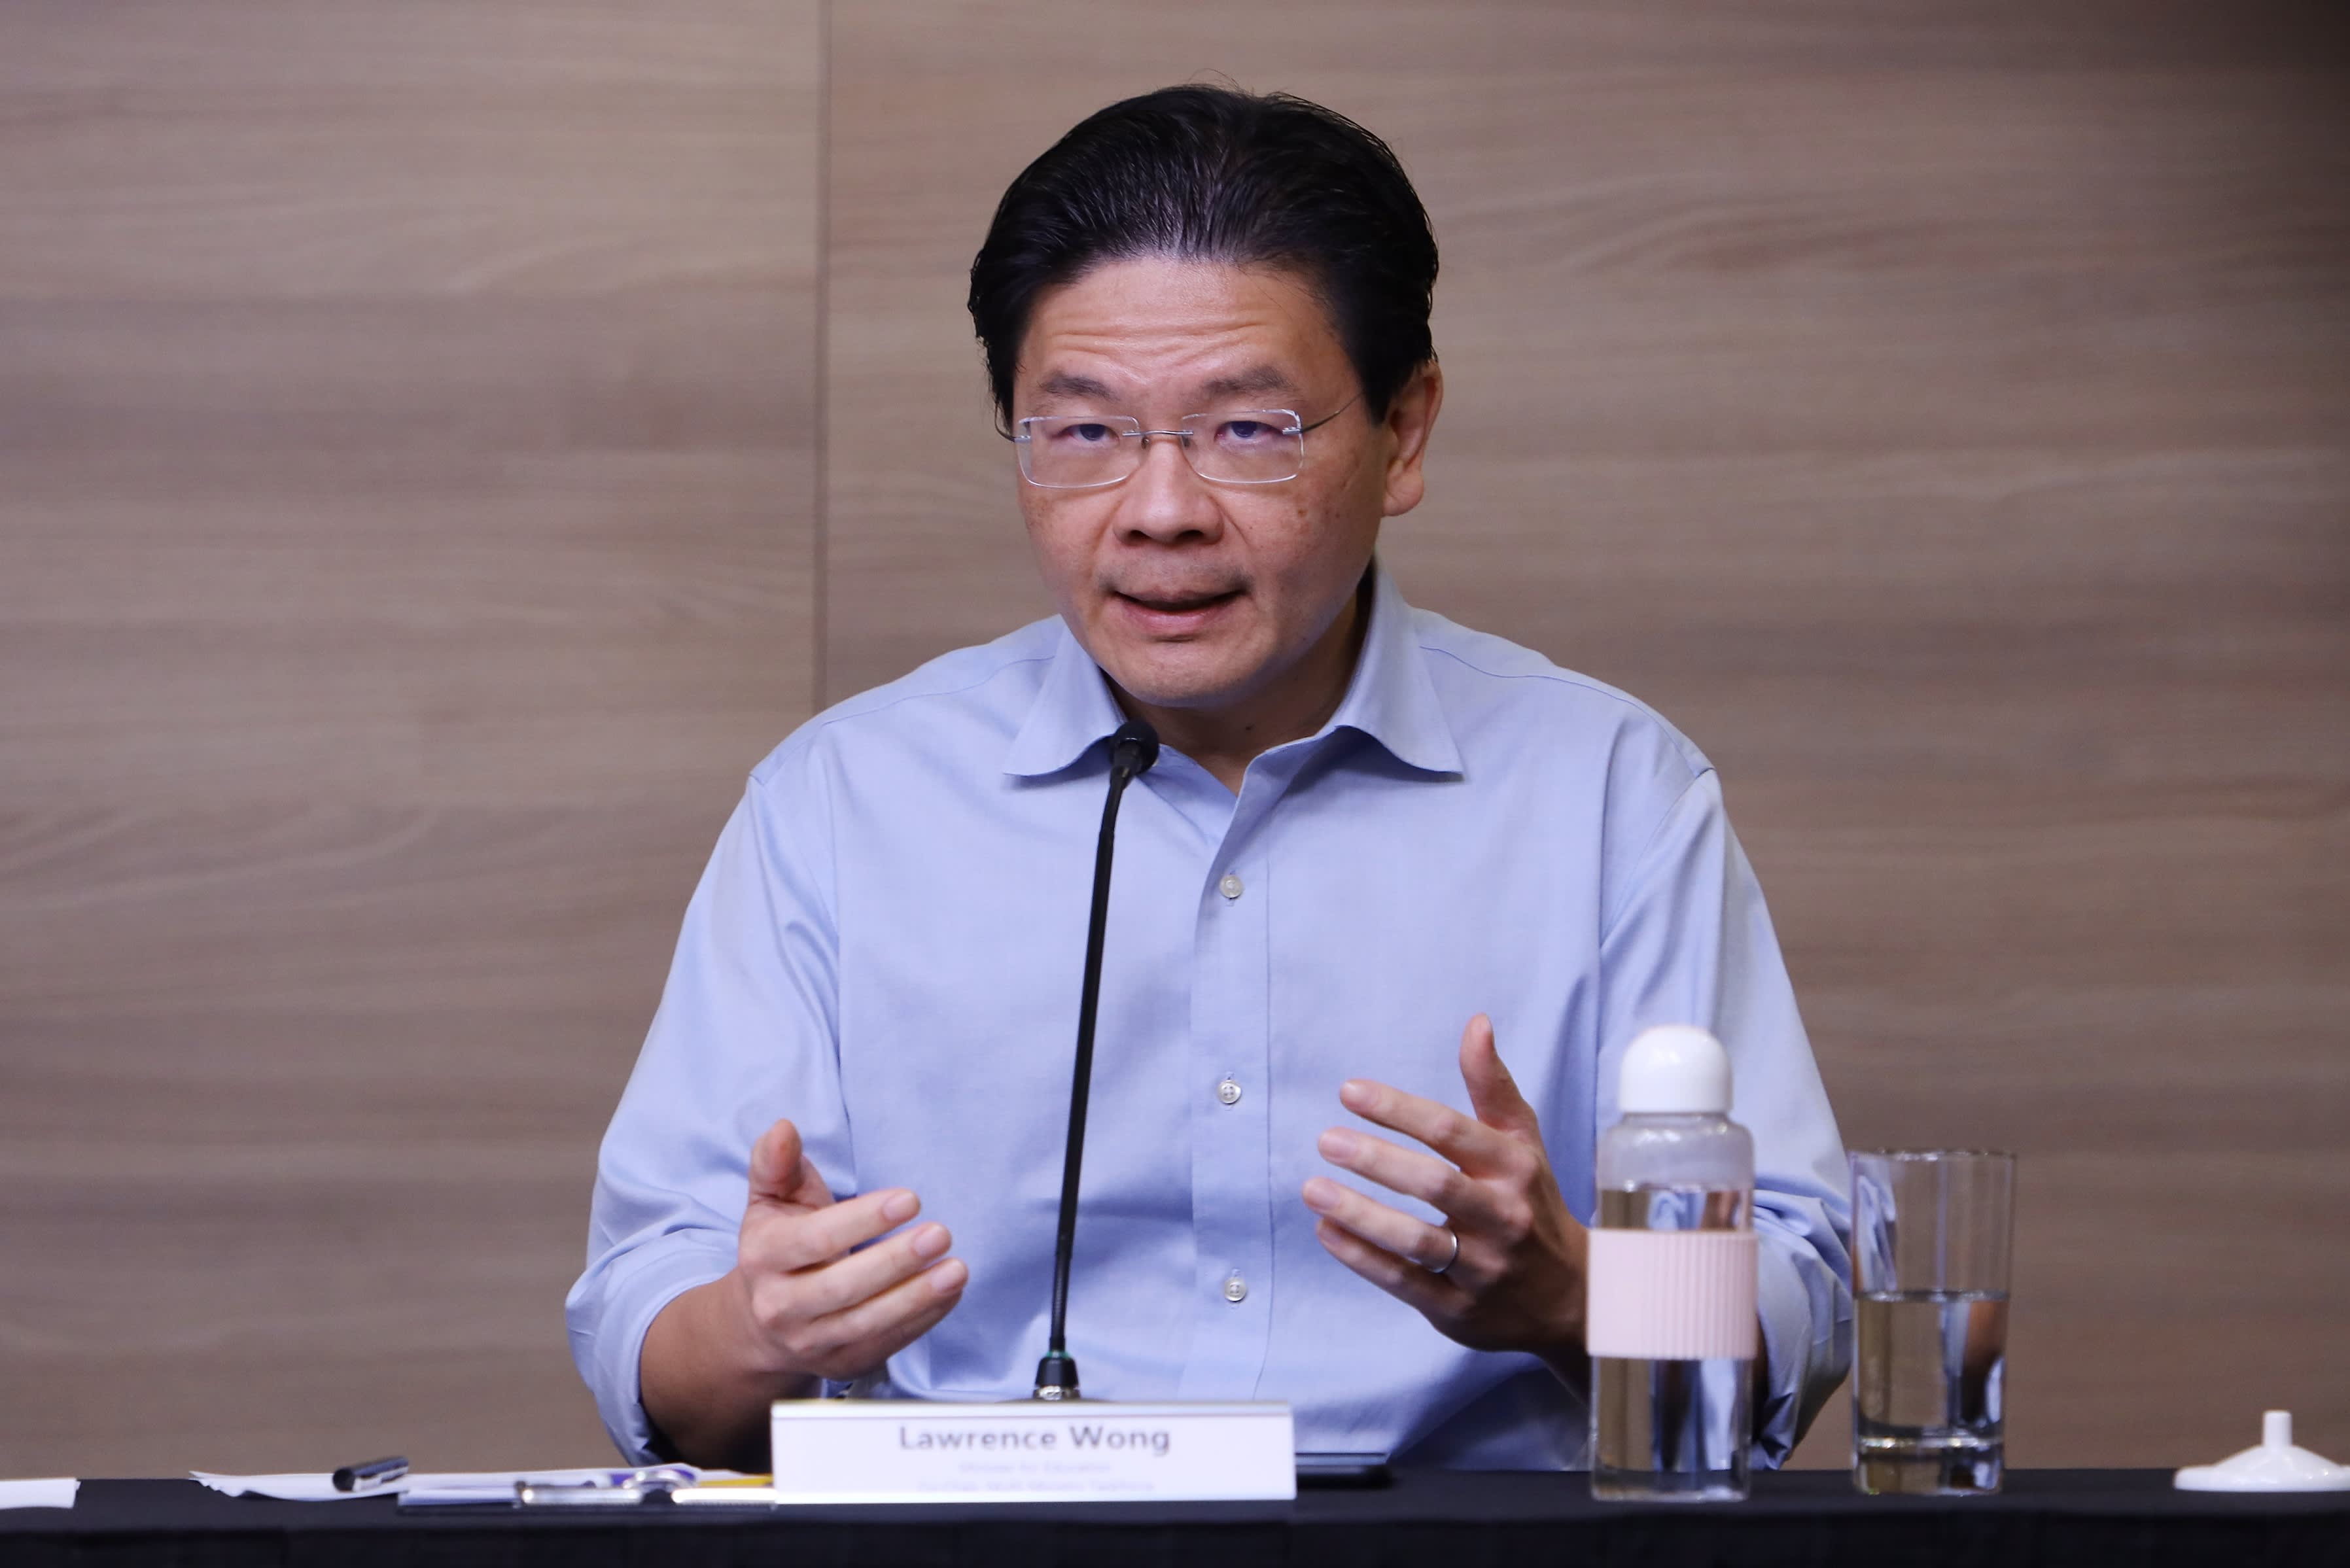 Singapore names new finance minister in cabinet reshuffle after setback in leadership succession